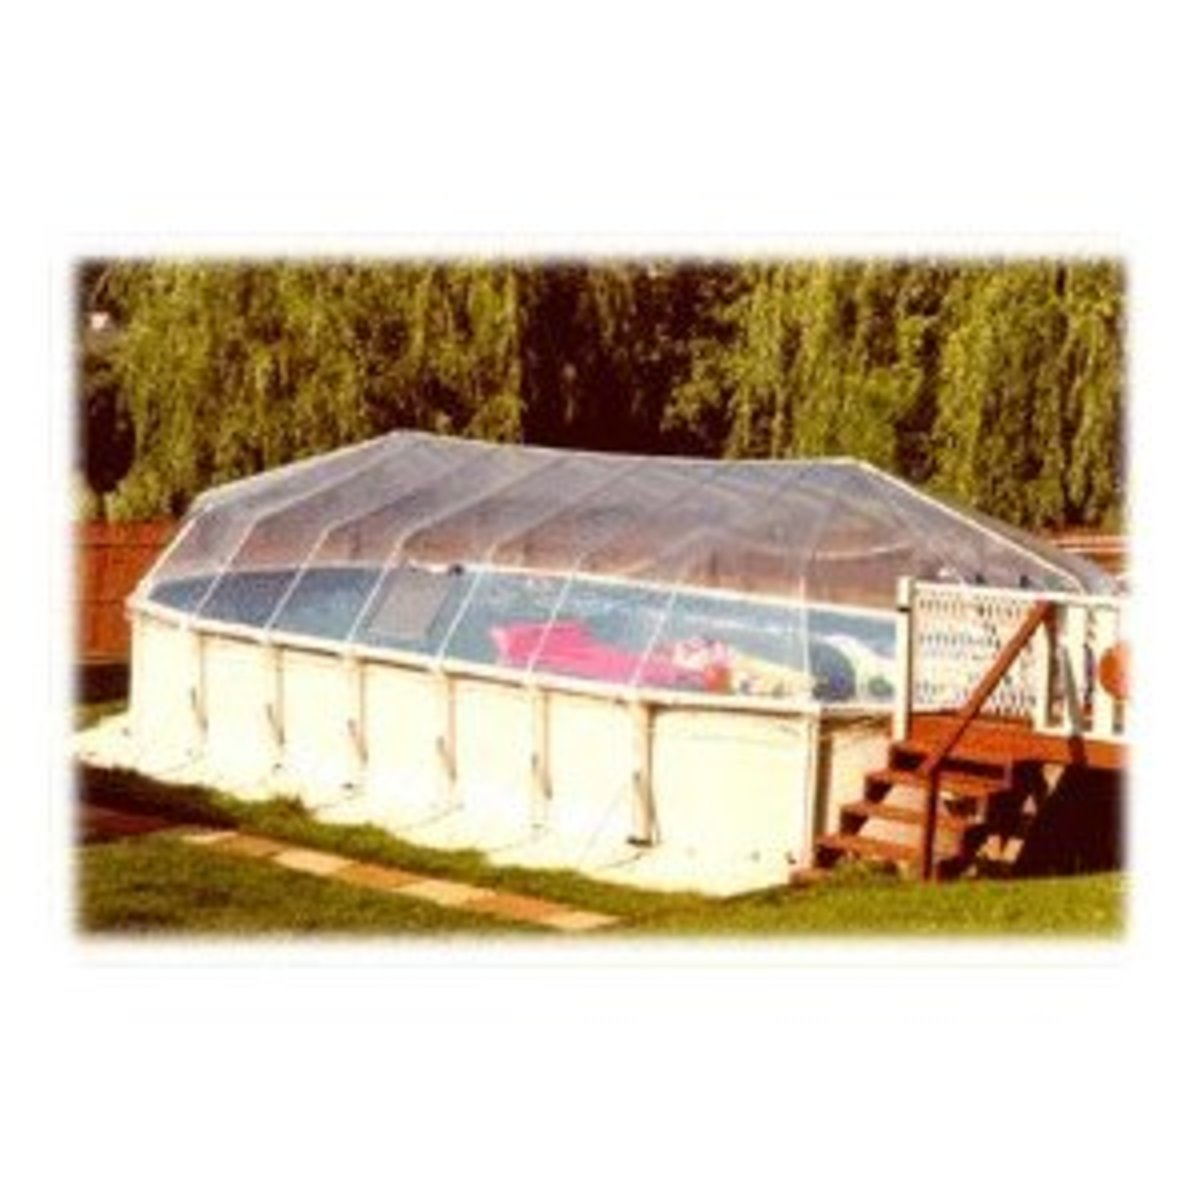 With a solar cover, above ground swimming pools can be used more.